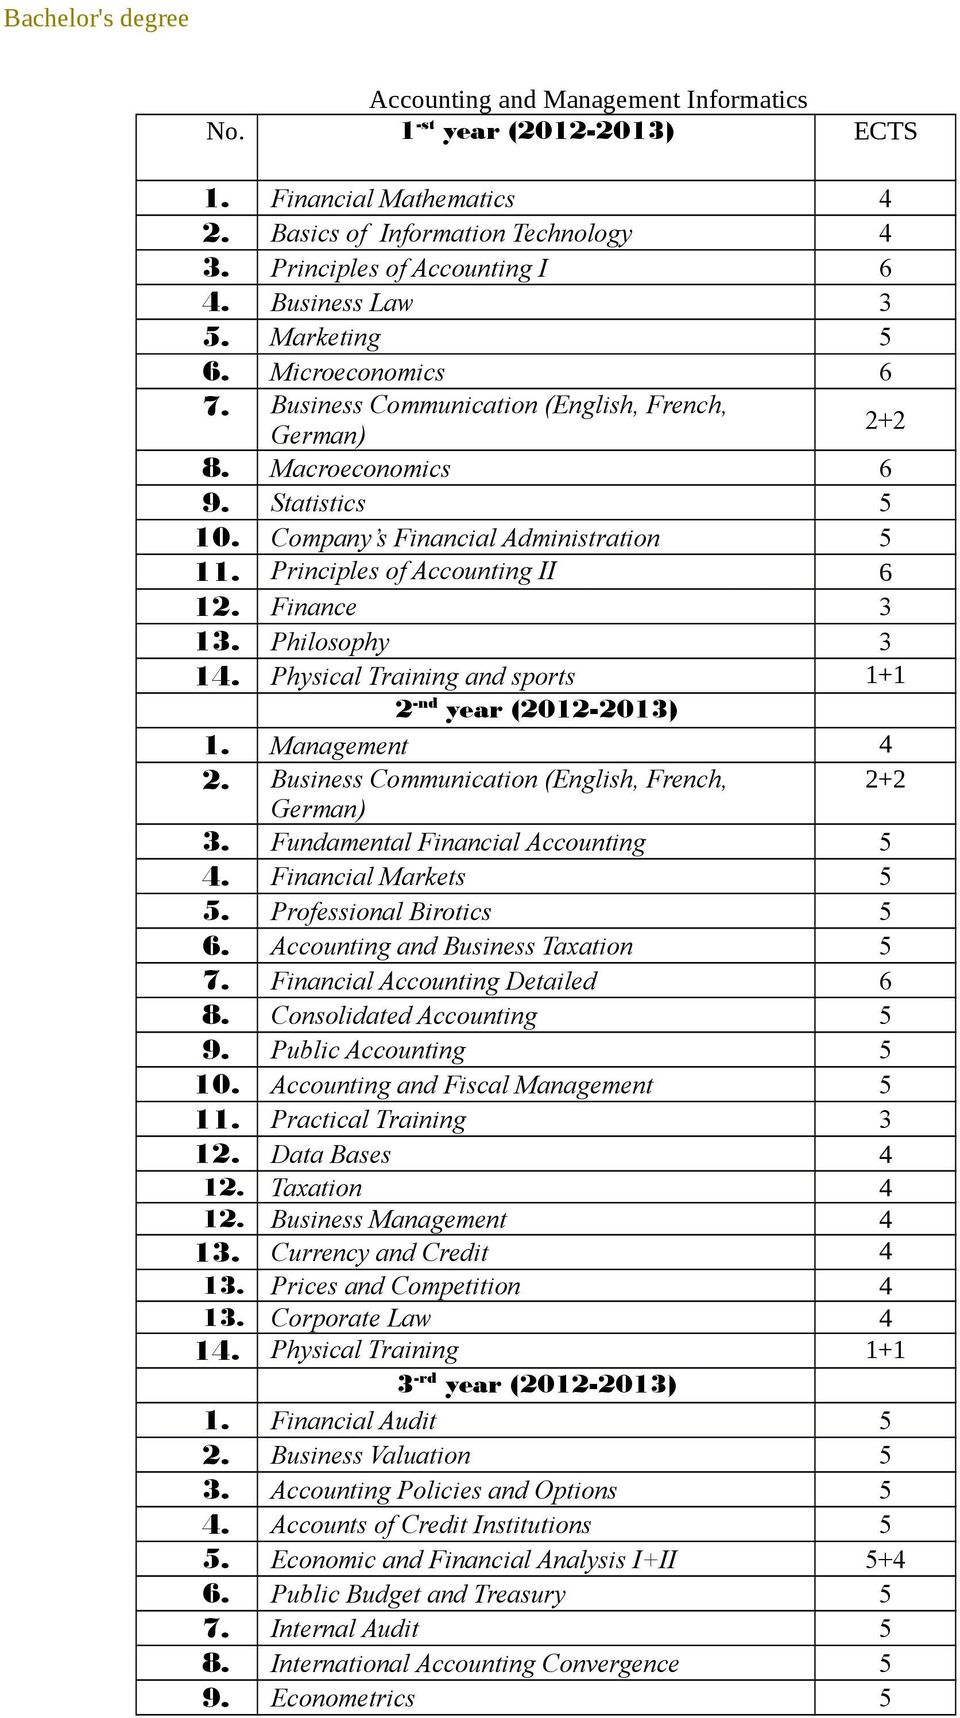 Finance 1. Philosophy 14. Physical Training and sports 1+1 1. Management 4 2. Business Communication (English, French,. Fundamental Financial Accounting 5 4. Financial Markets 5 5.